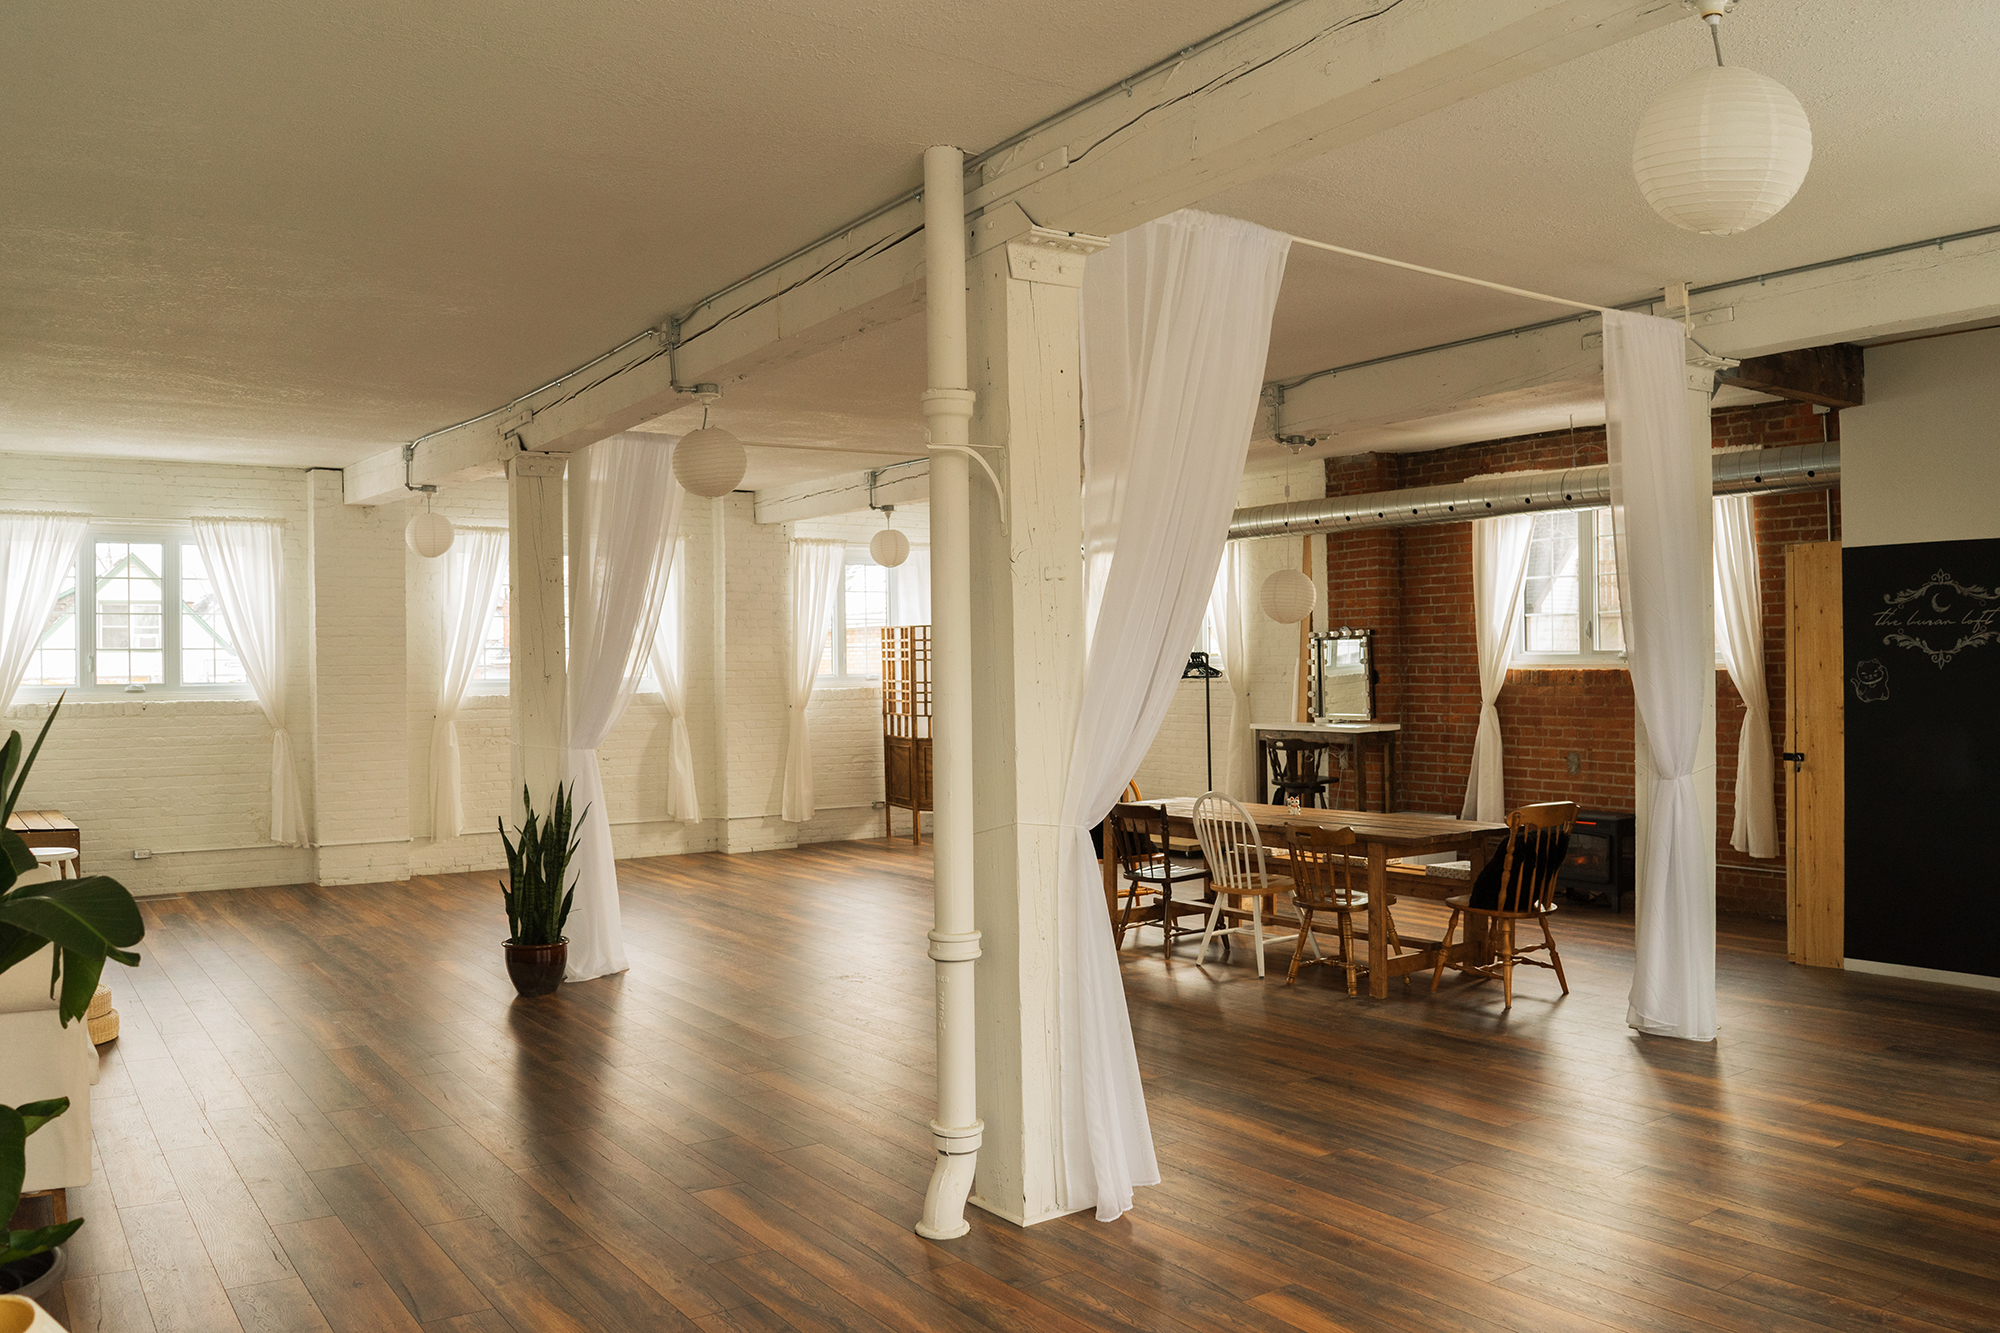 hamilton-photo-studio-the-lunar-loft.jpg